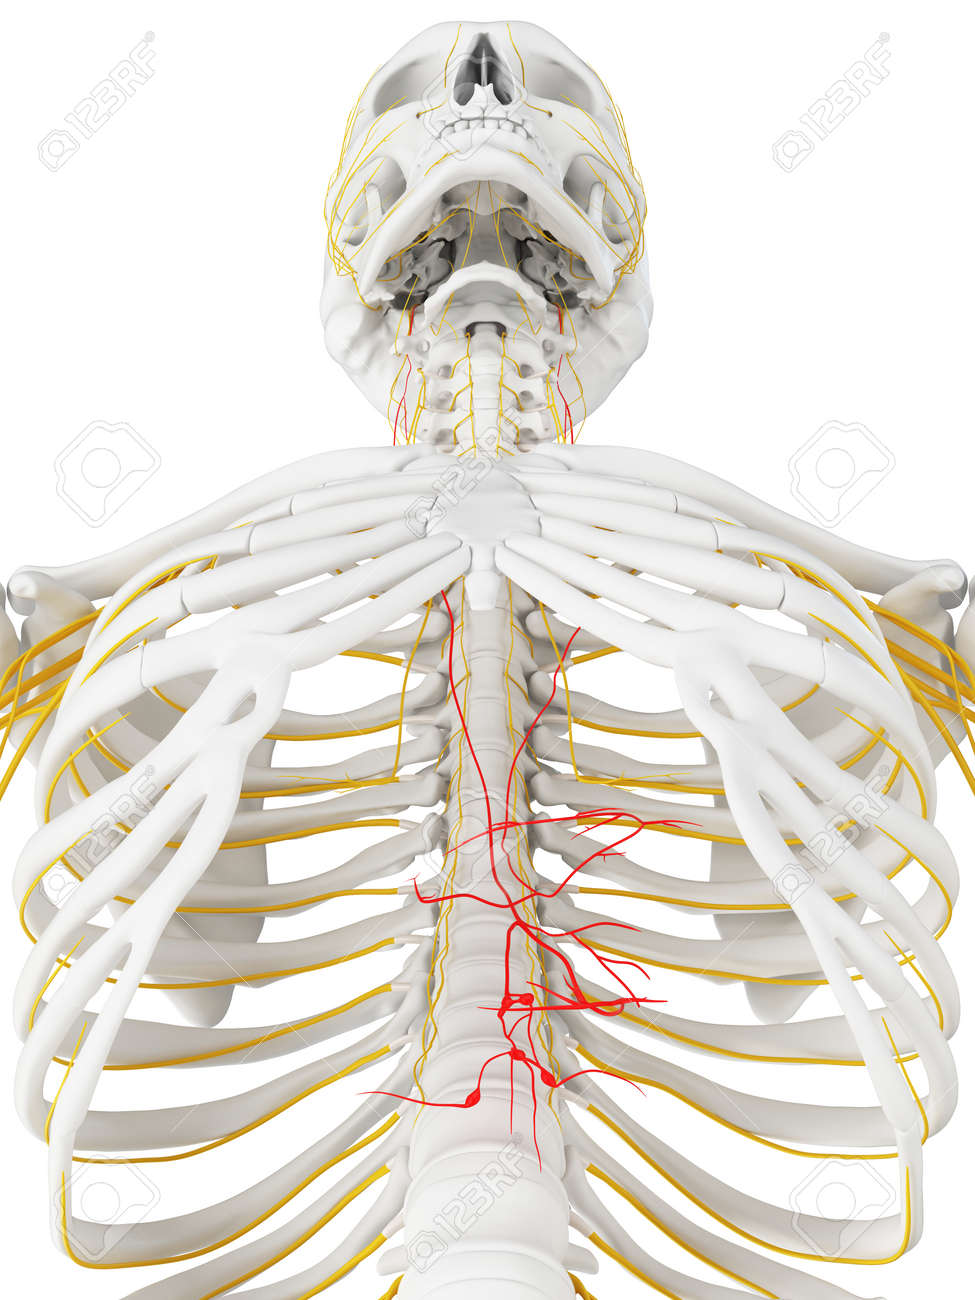 3d Rendered Medically Accurate Illustration Of The Vagus Nerve Stock ...